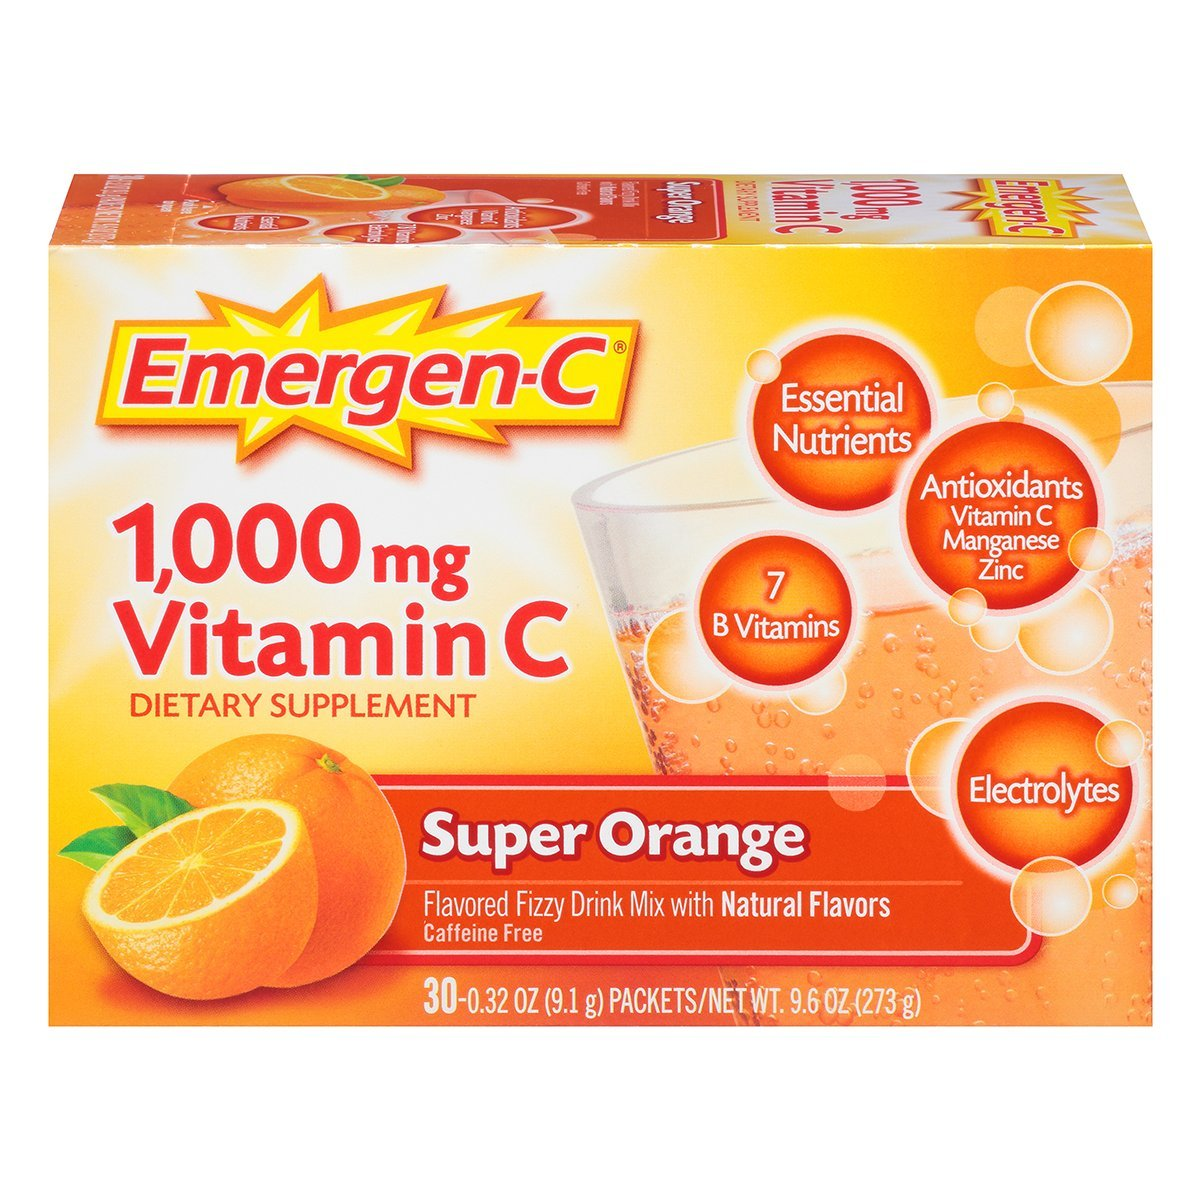 Emergen-C (30 Count, Super Orange Flavor, 1 Month Supply) Dietary Supplement Fizzy Drink Mix with 1000mg Vitamin C, 0.32 Ounce Packets, Caffeine Free